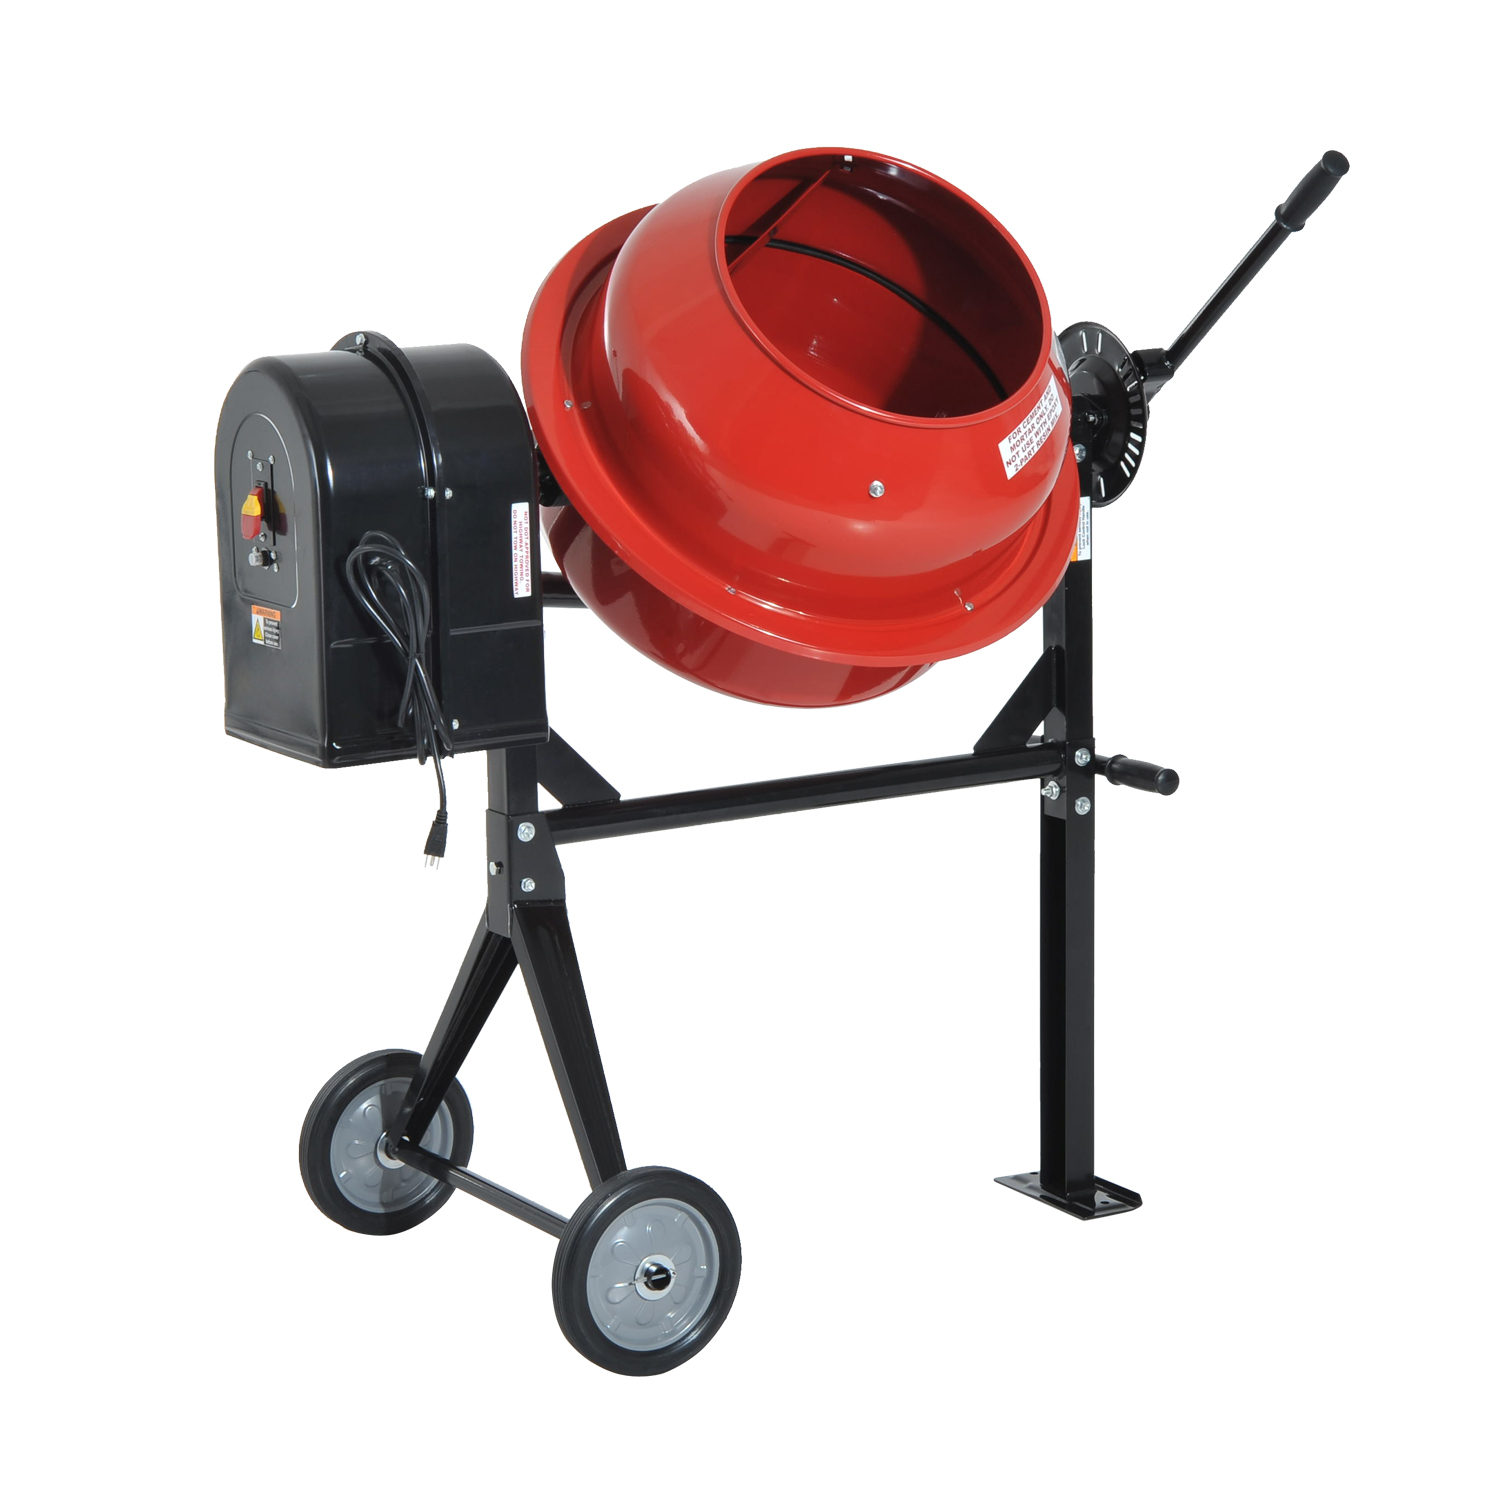 HomCom 3.5 Cu Ft Portable Electric Cement Concrete Mixer 1 2 HP ??Tools & Hardware by Aosom LLC